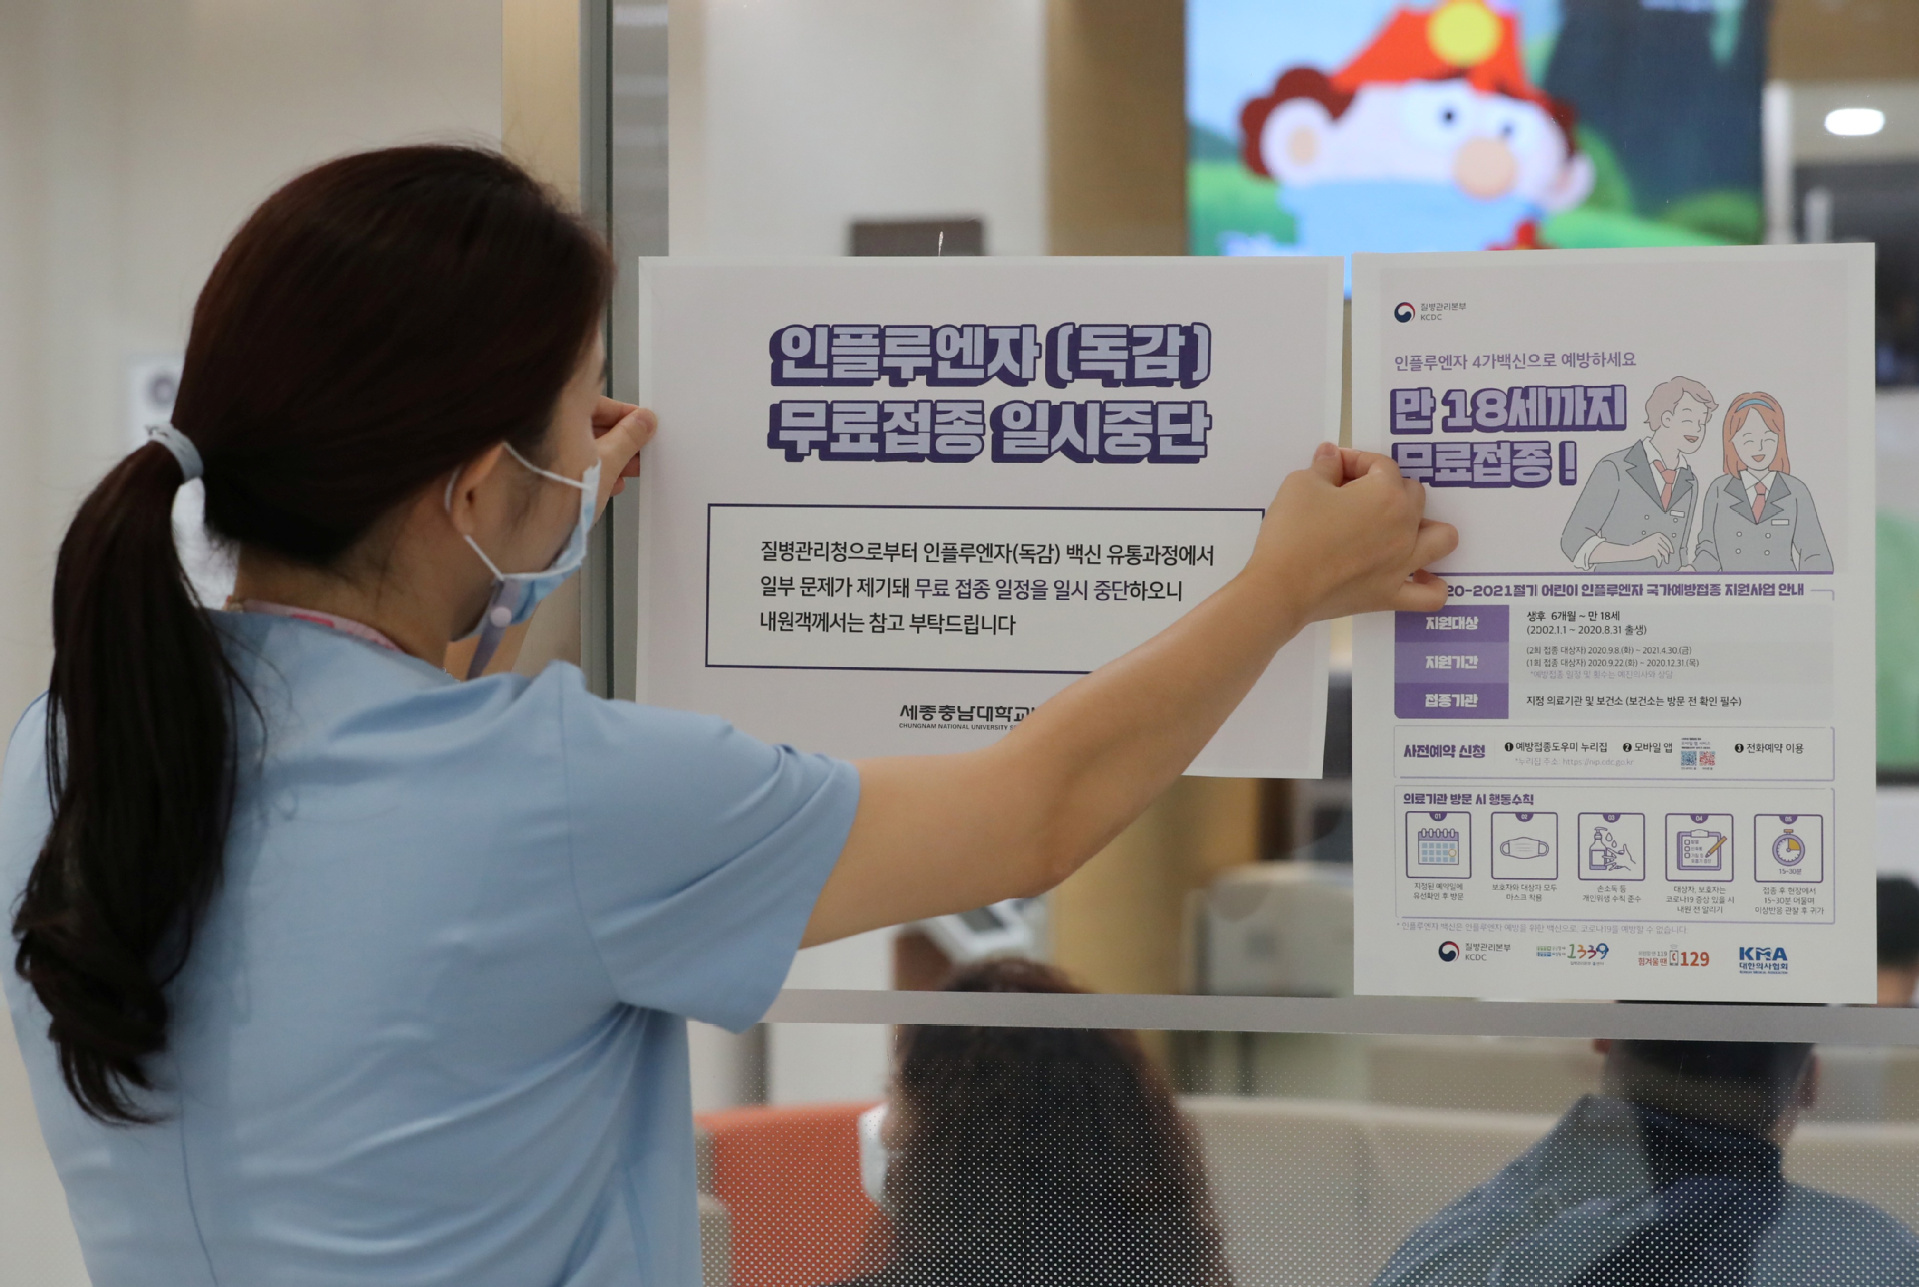 S.Korea to downgrade social-distancing guidelines to lowest level